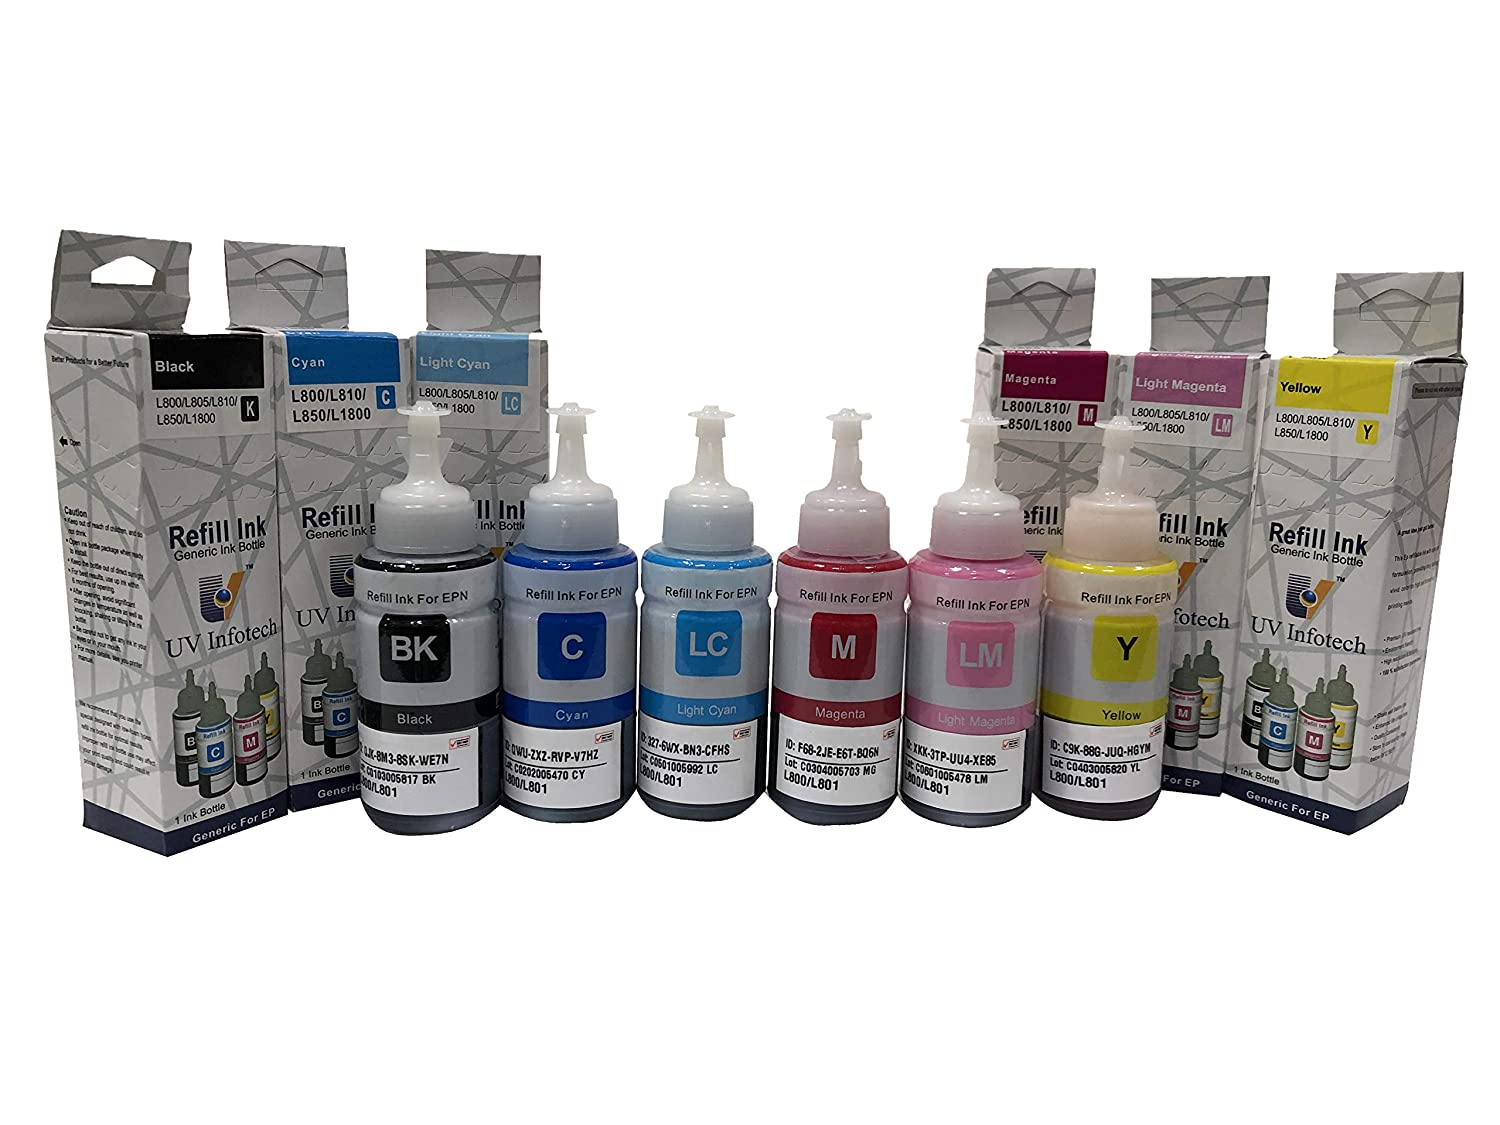 UV INFOTECH Refill Ink 673 / T6731 / 32/33 / 34/35 / 36 Compatible for Epson EcoTank L800 Printer  Bk/C/M/Y/LC/LM   70 ml Each